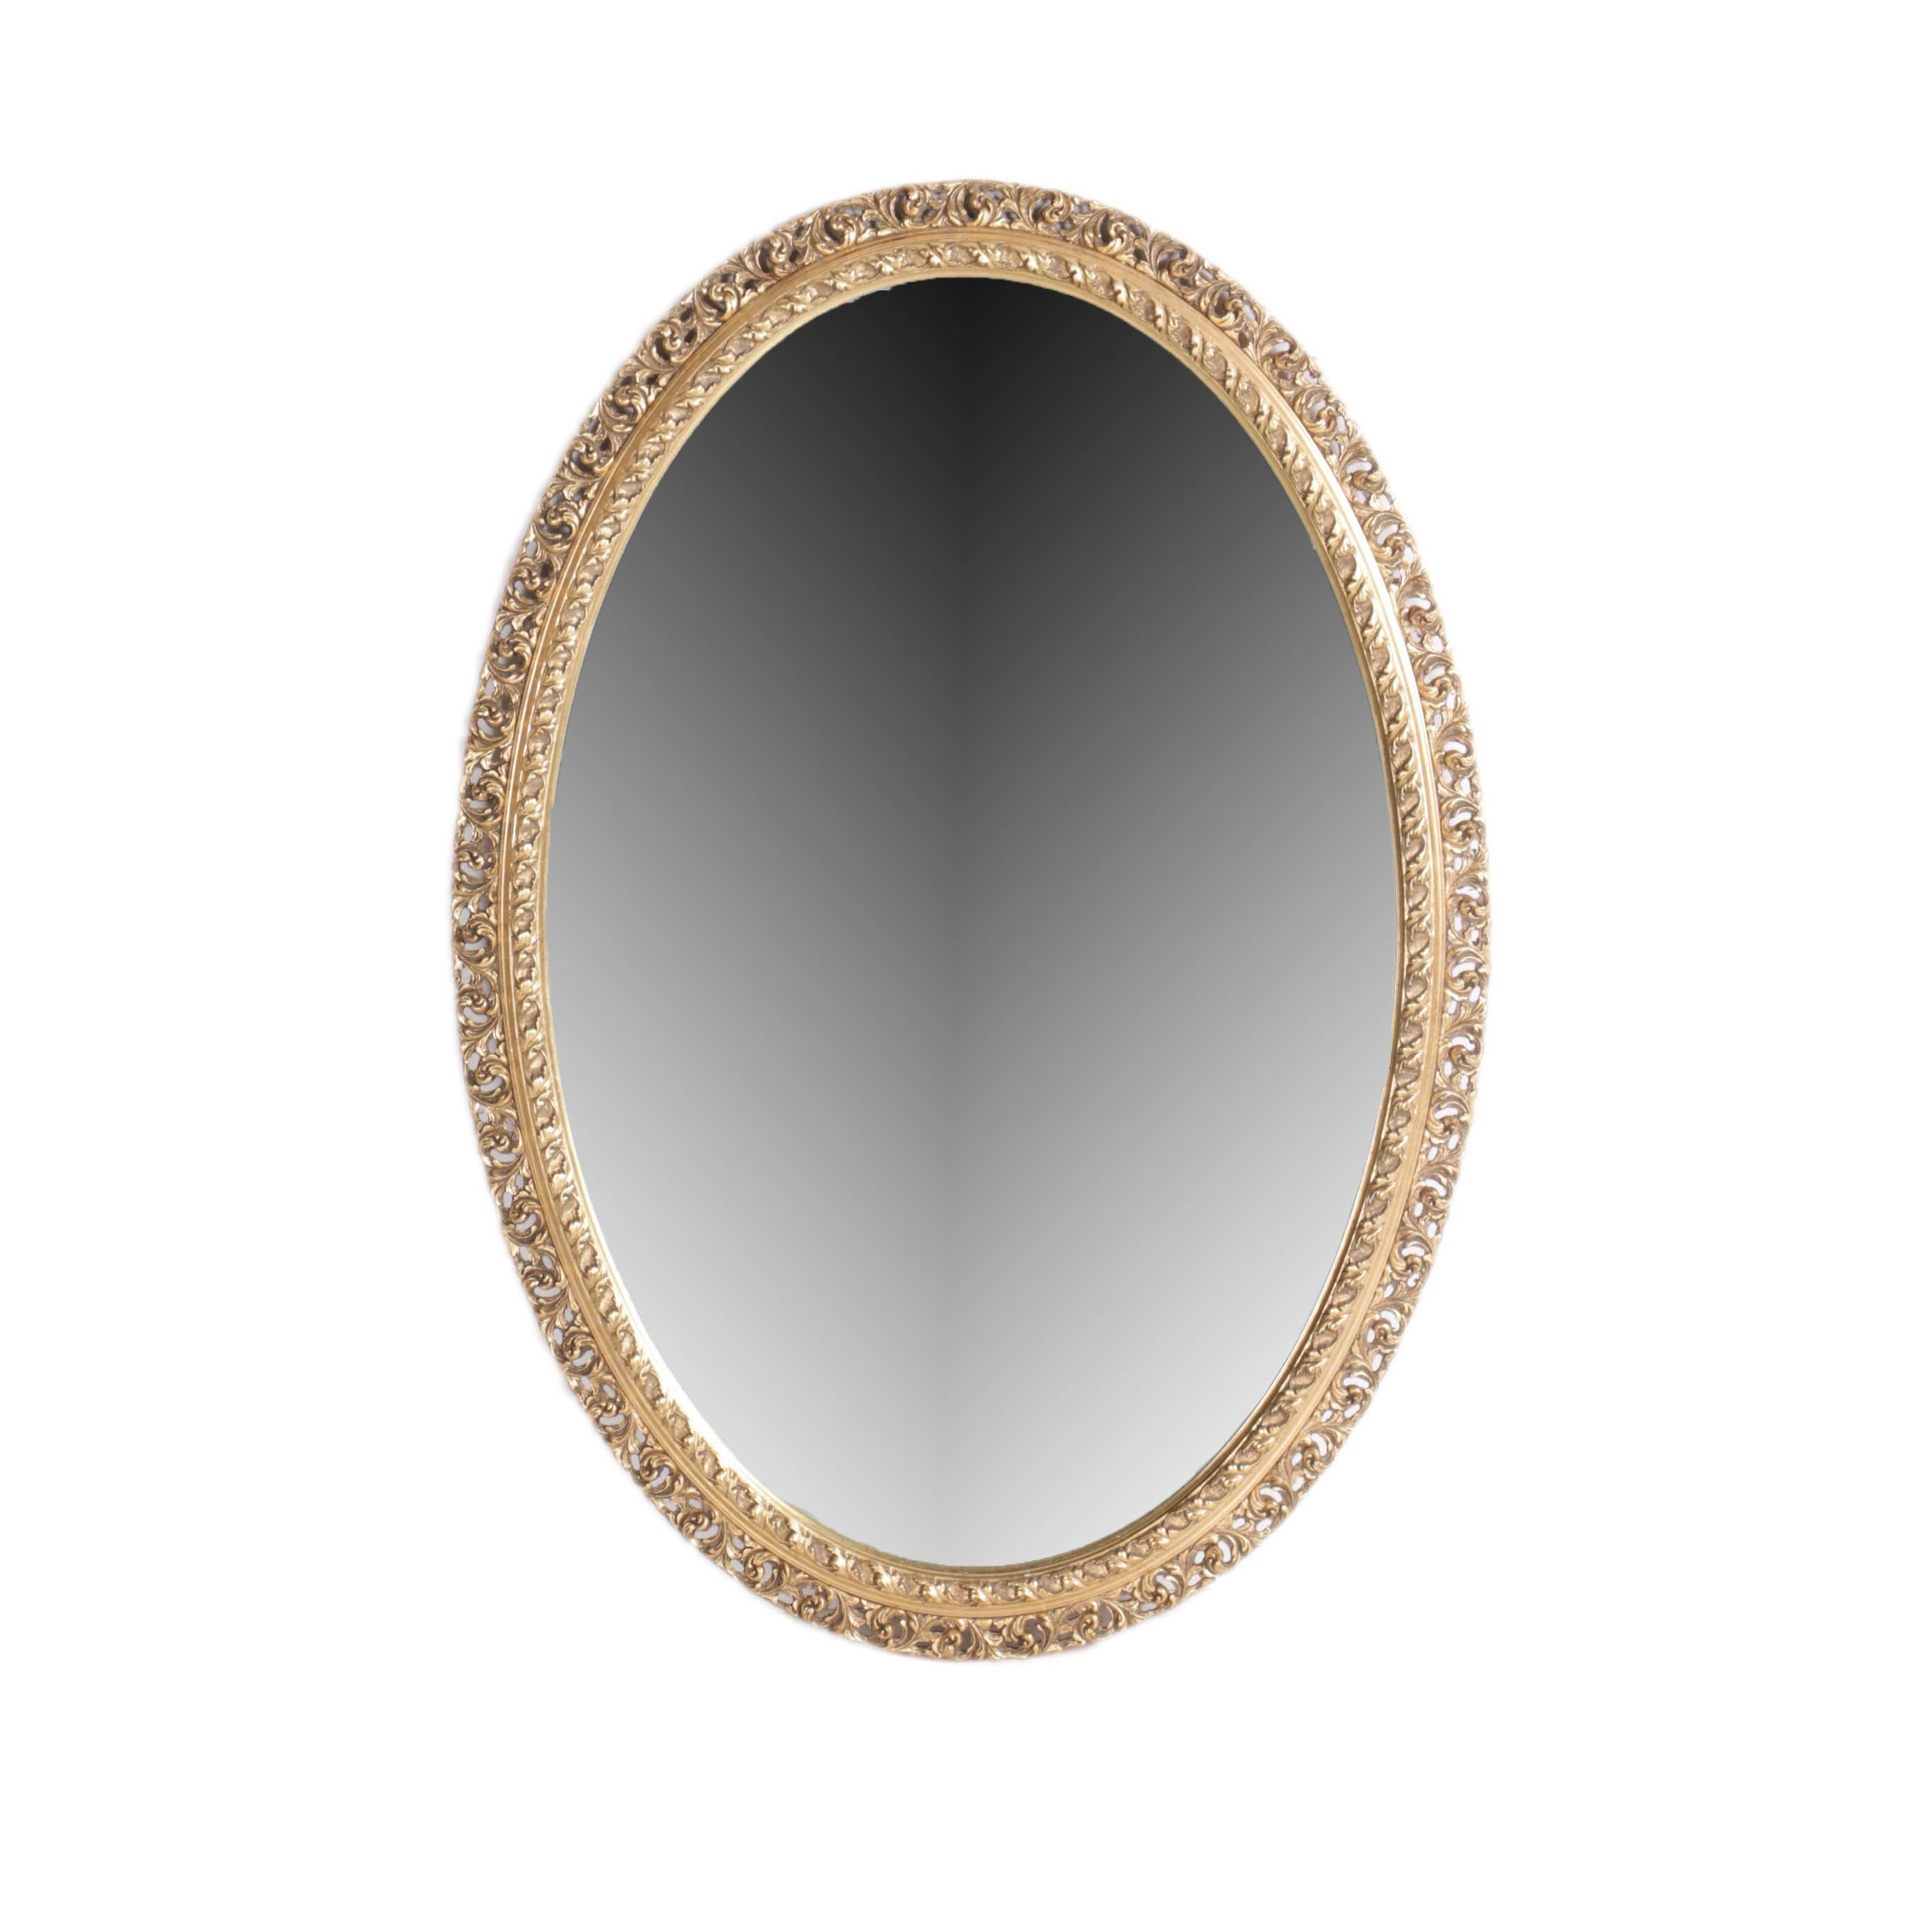 Gold Tone Oval Wood Framed Wall Mirror